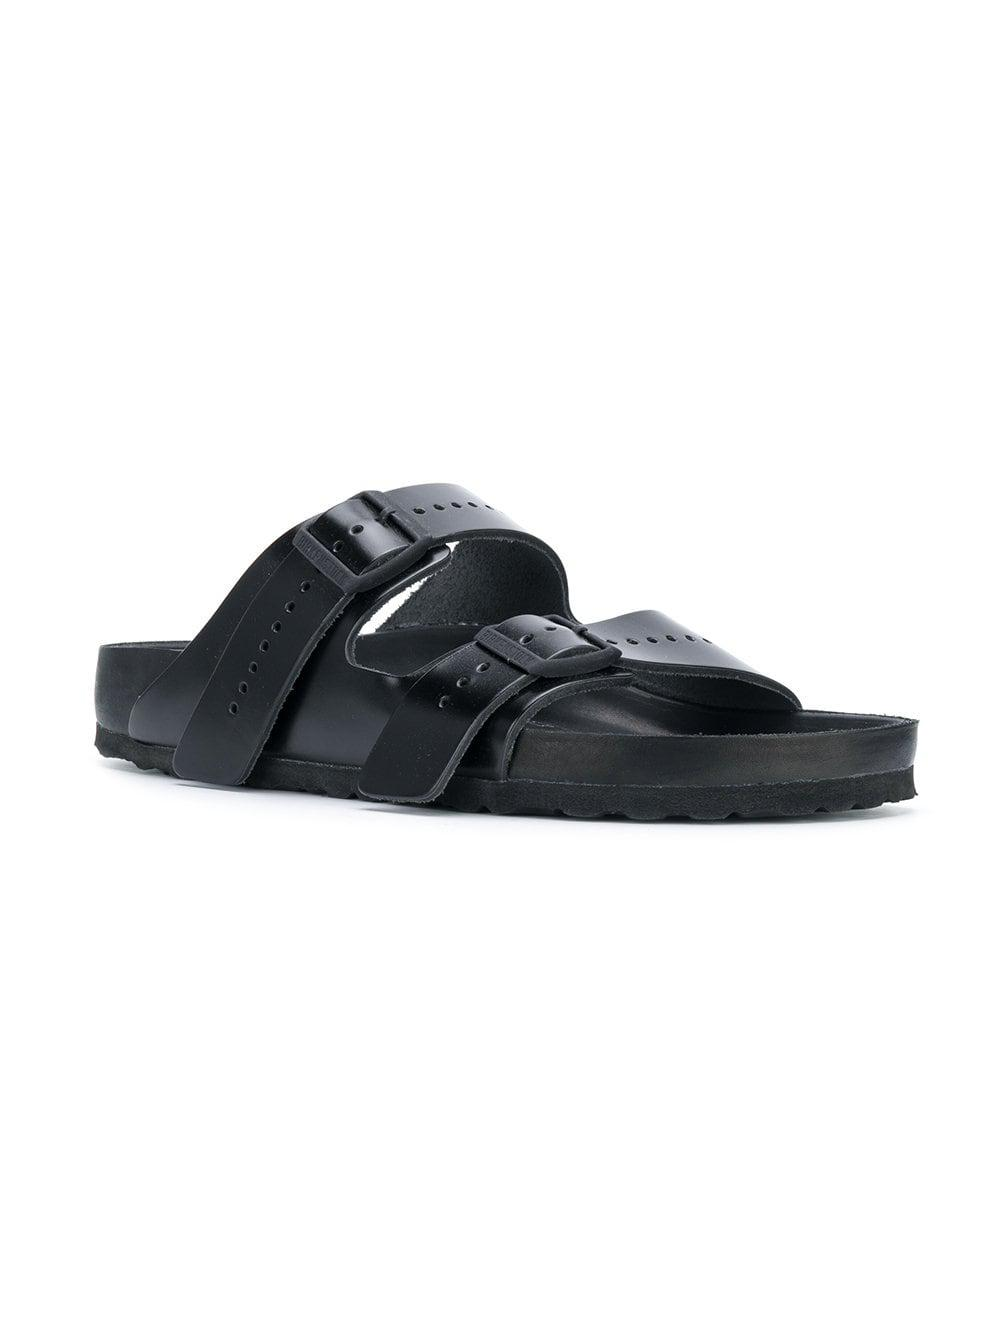 322a5a243aff Lyst - Rick Owens X Birkenstock Arizona Sandals in Black for Men - Save 39%